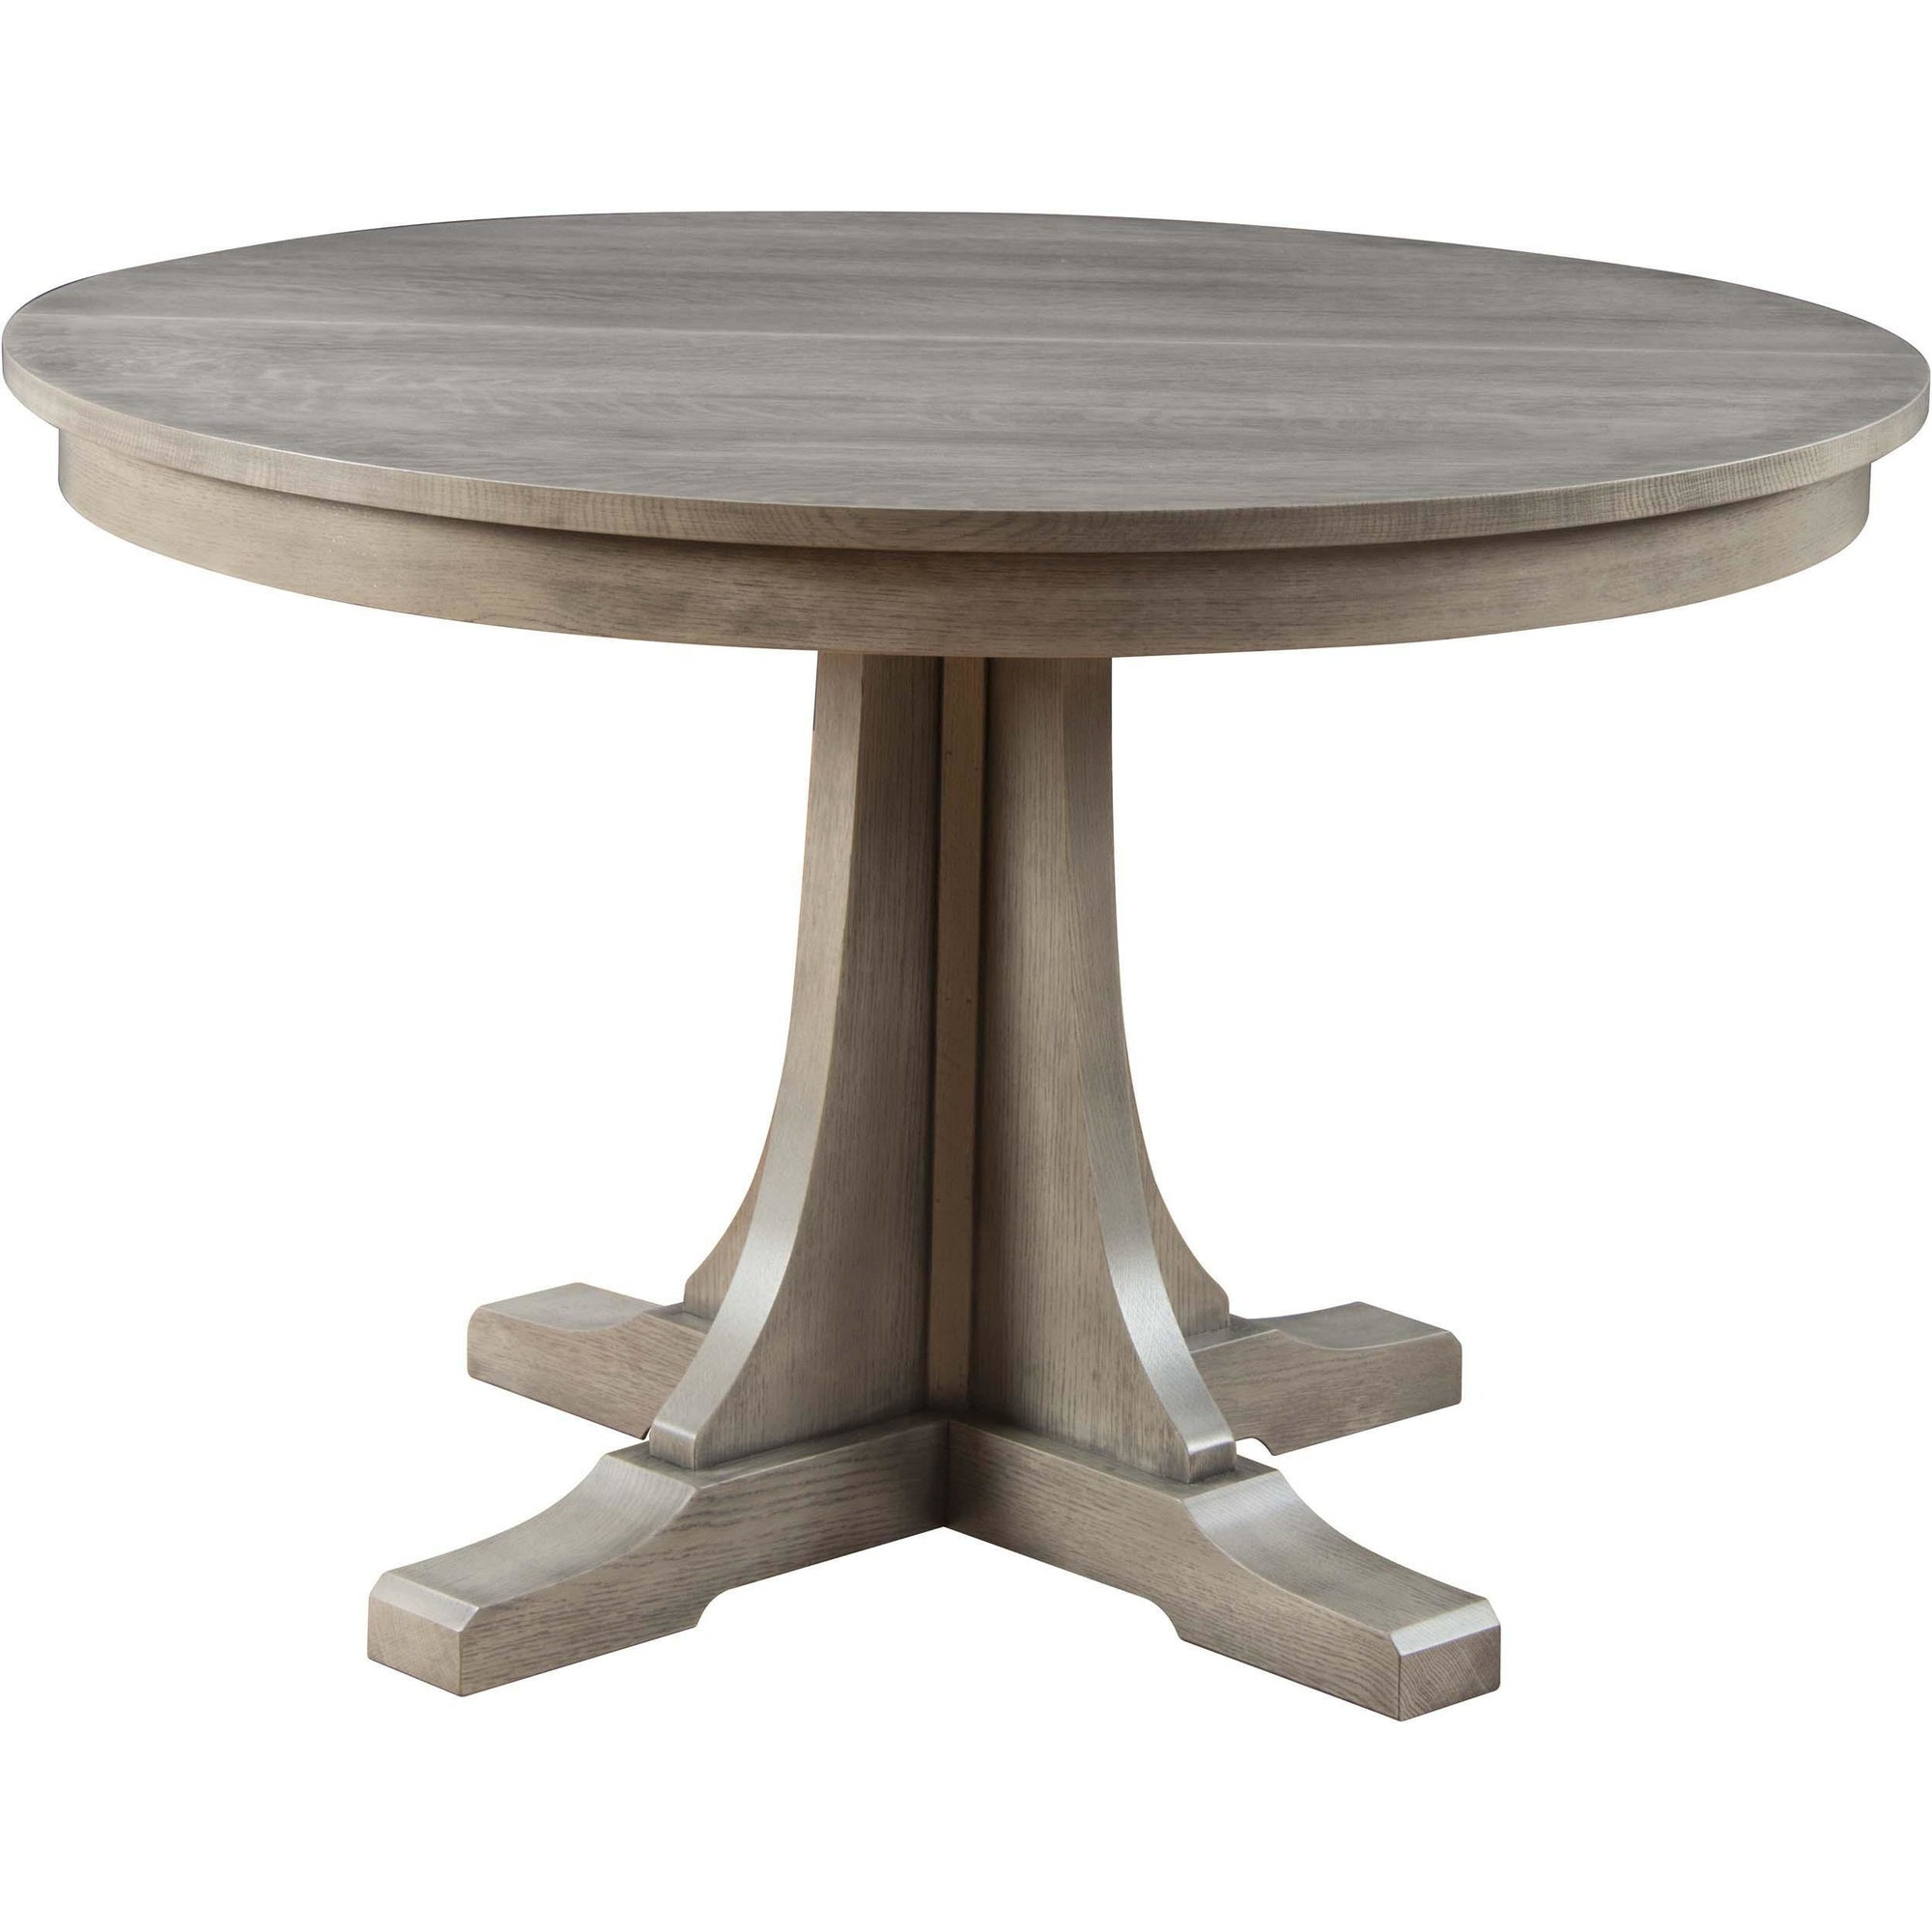 Round Pedestal Table with Leaves